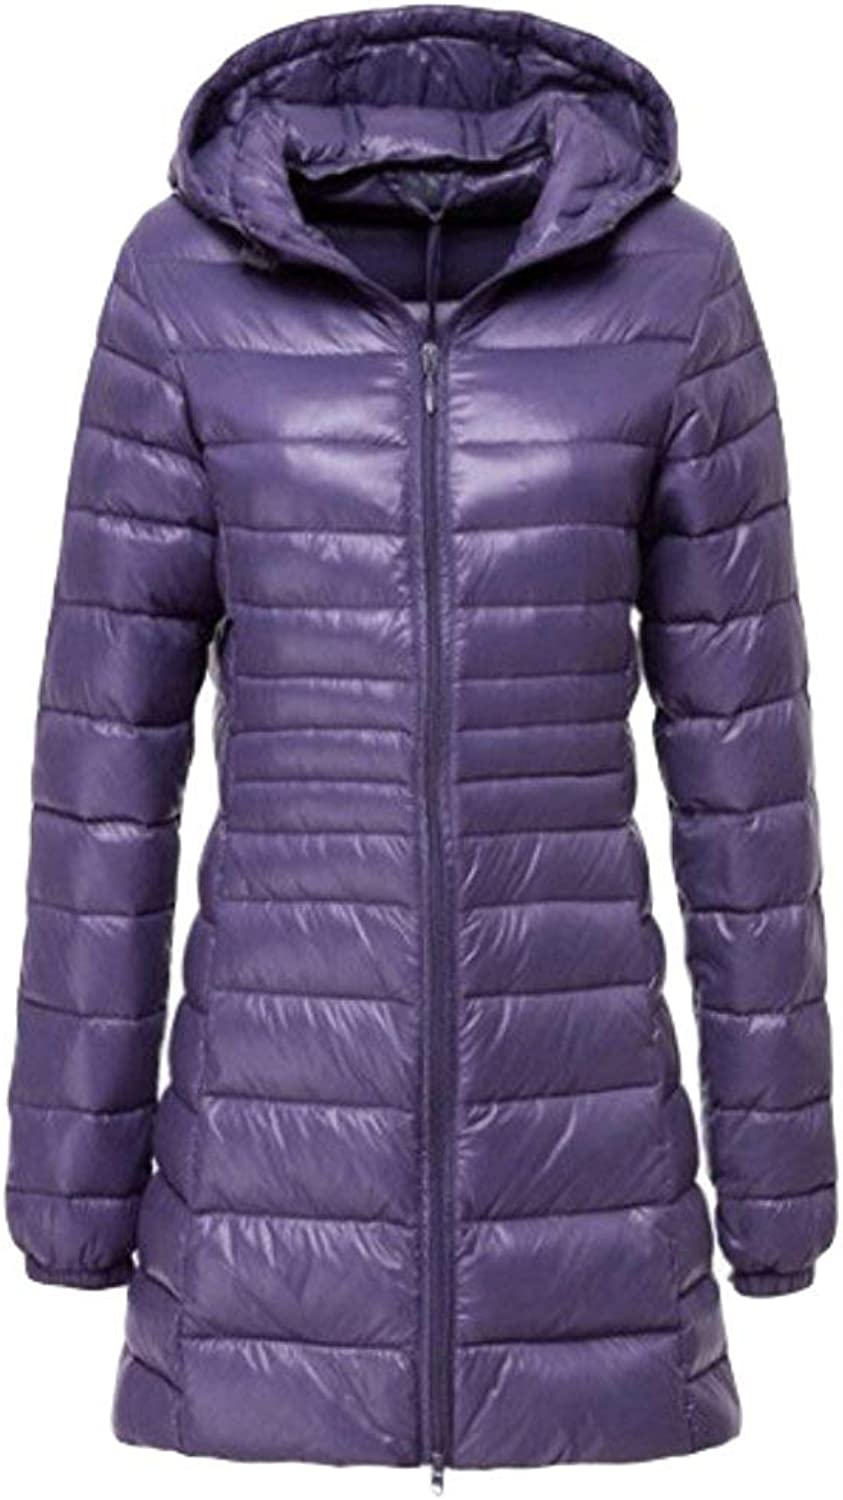 Oudan Women's Down Jacket Quilted Jacket Ultra Lightweight Hooded Jacket Long Down Coat SXXL (color   Purple, Size   L)